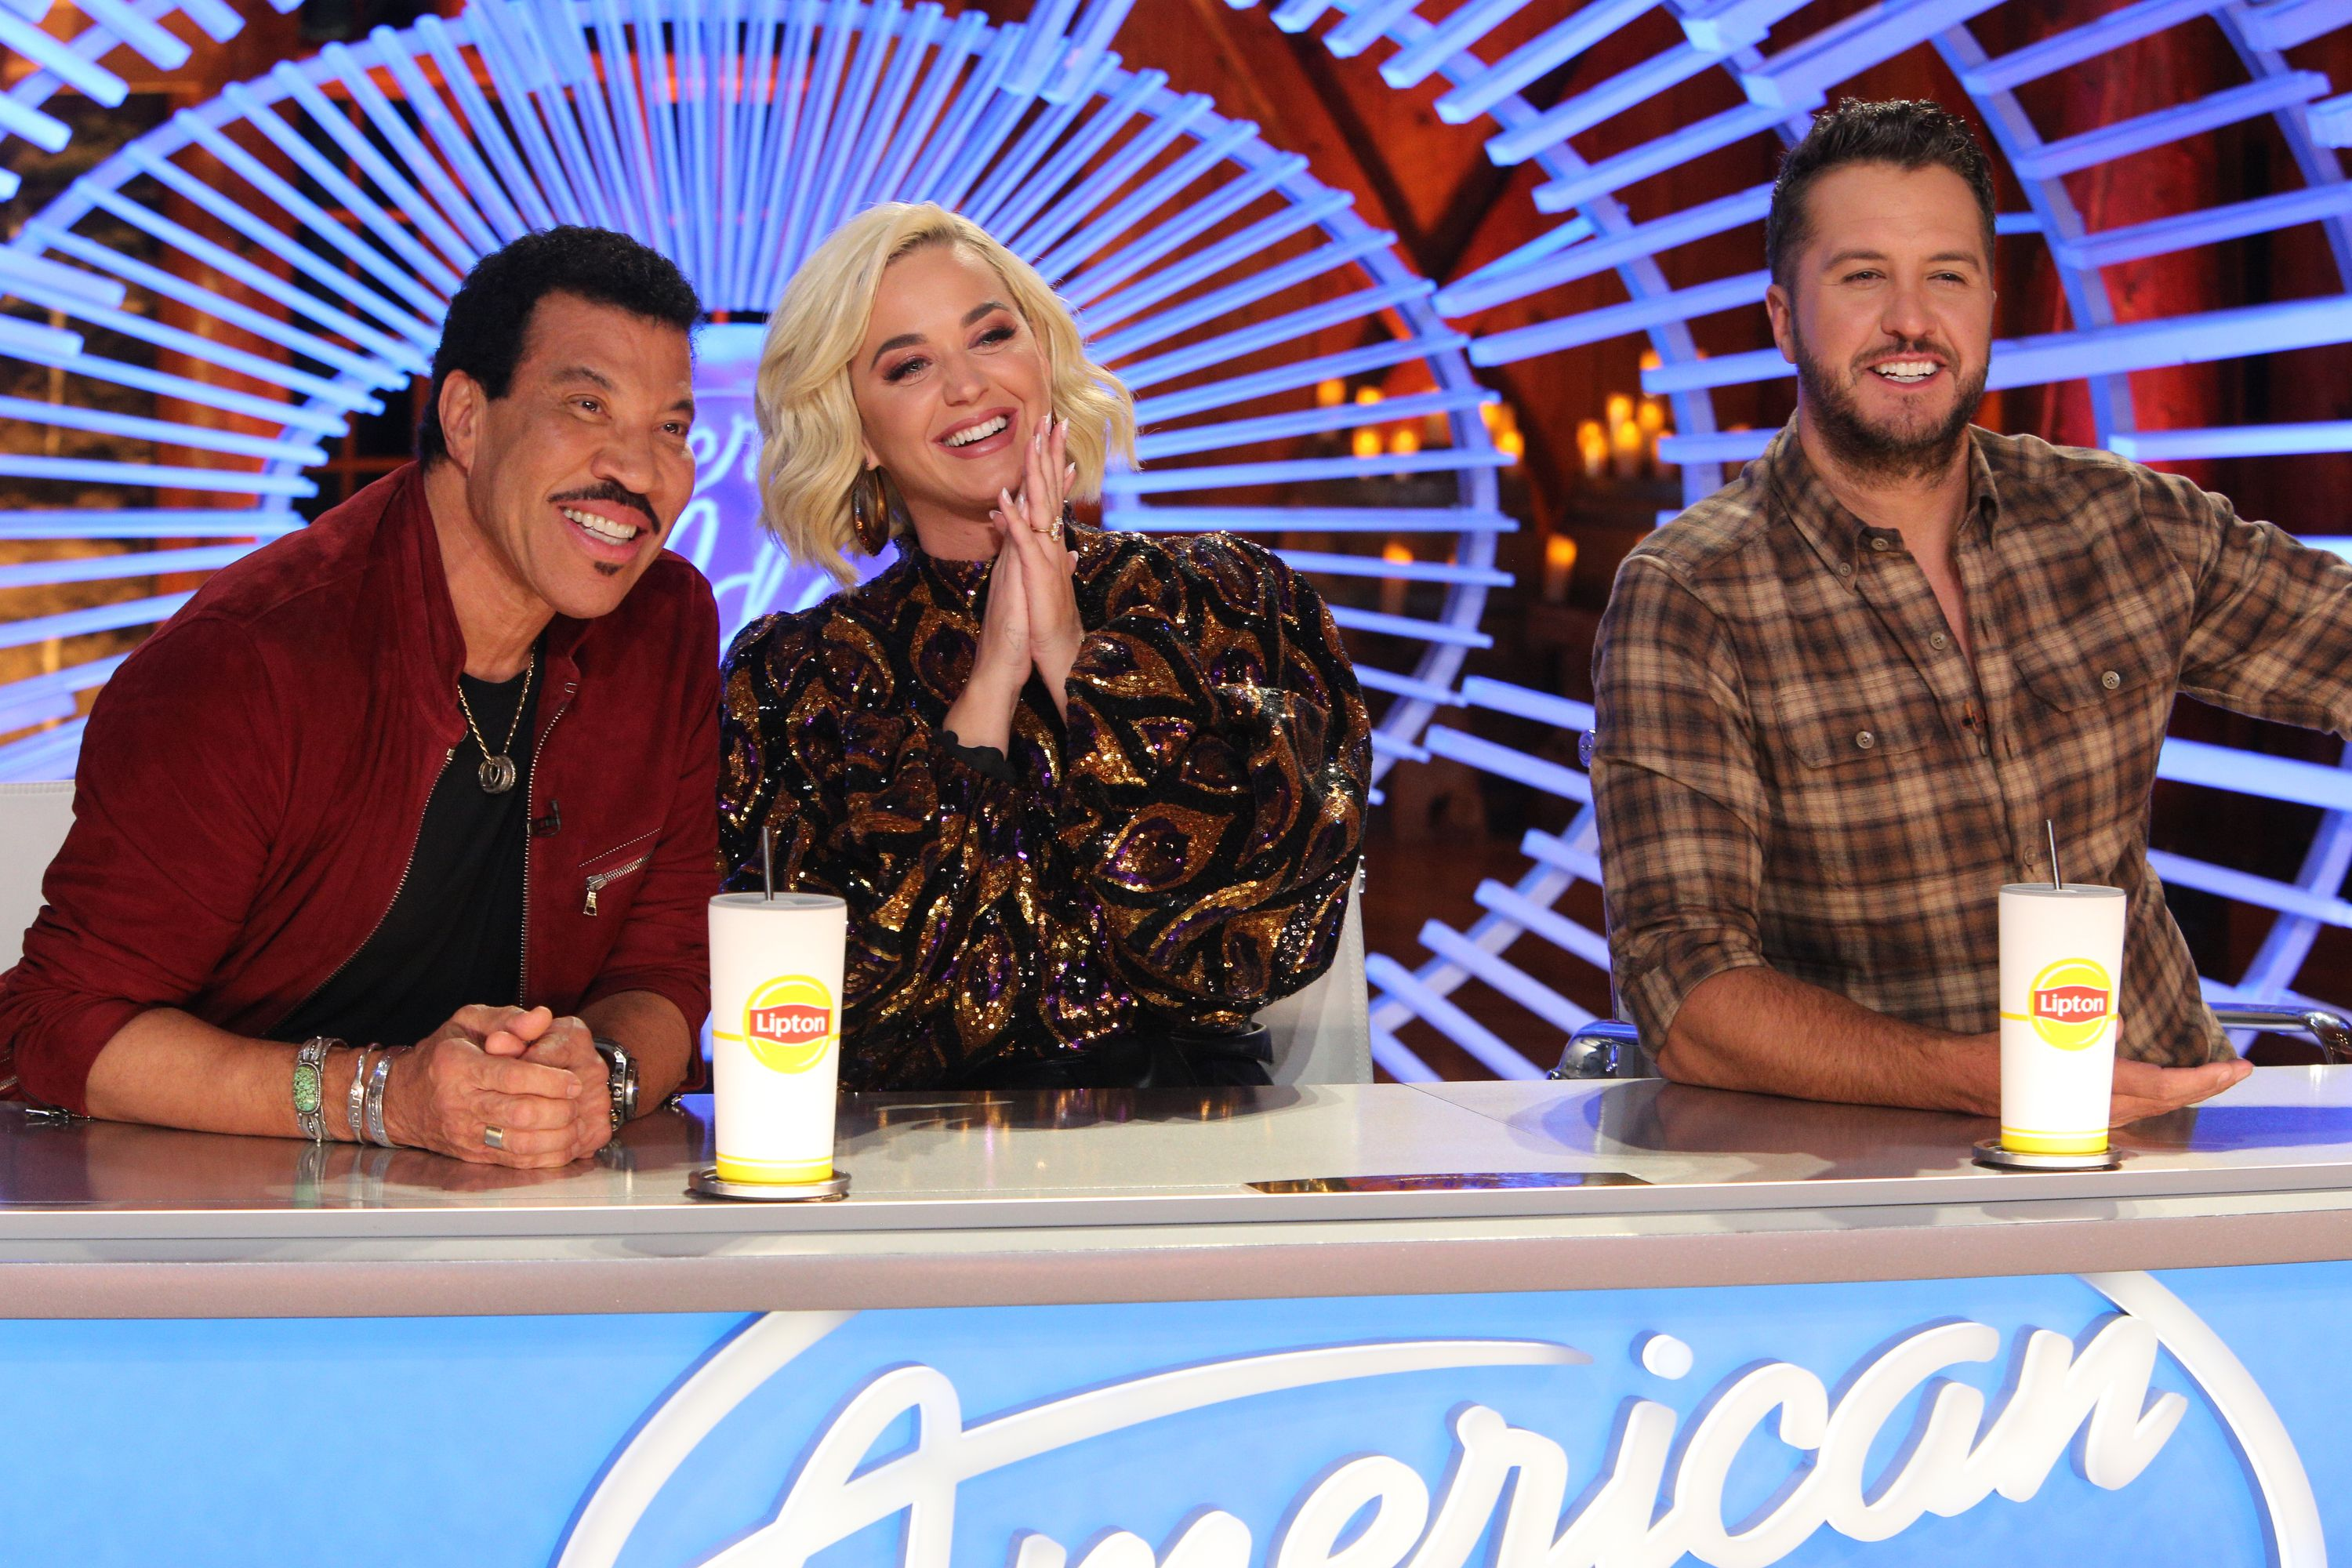 """Lionel Richie, Katy Perry, and Luke Bryan on the set of """"American Idol"""" 